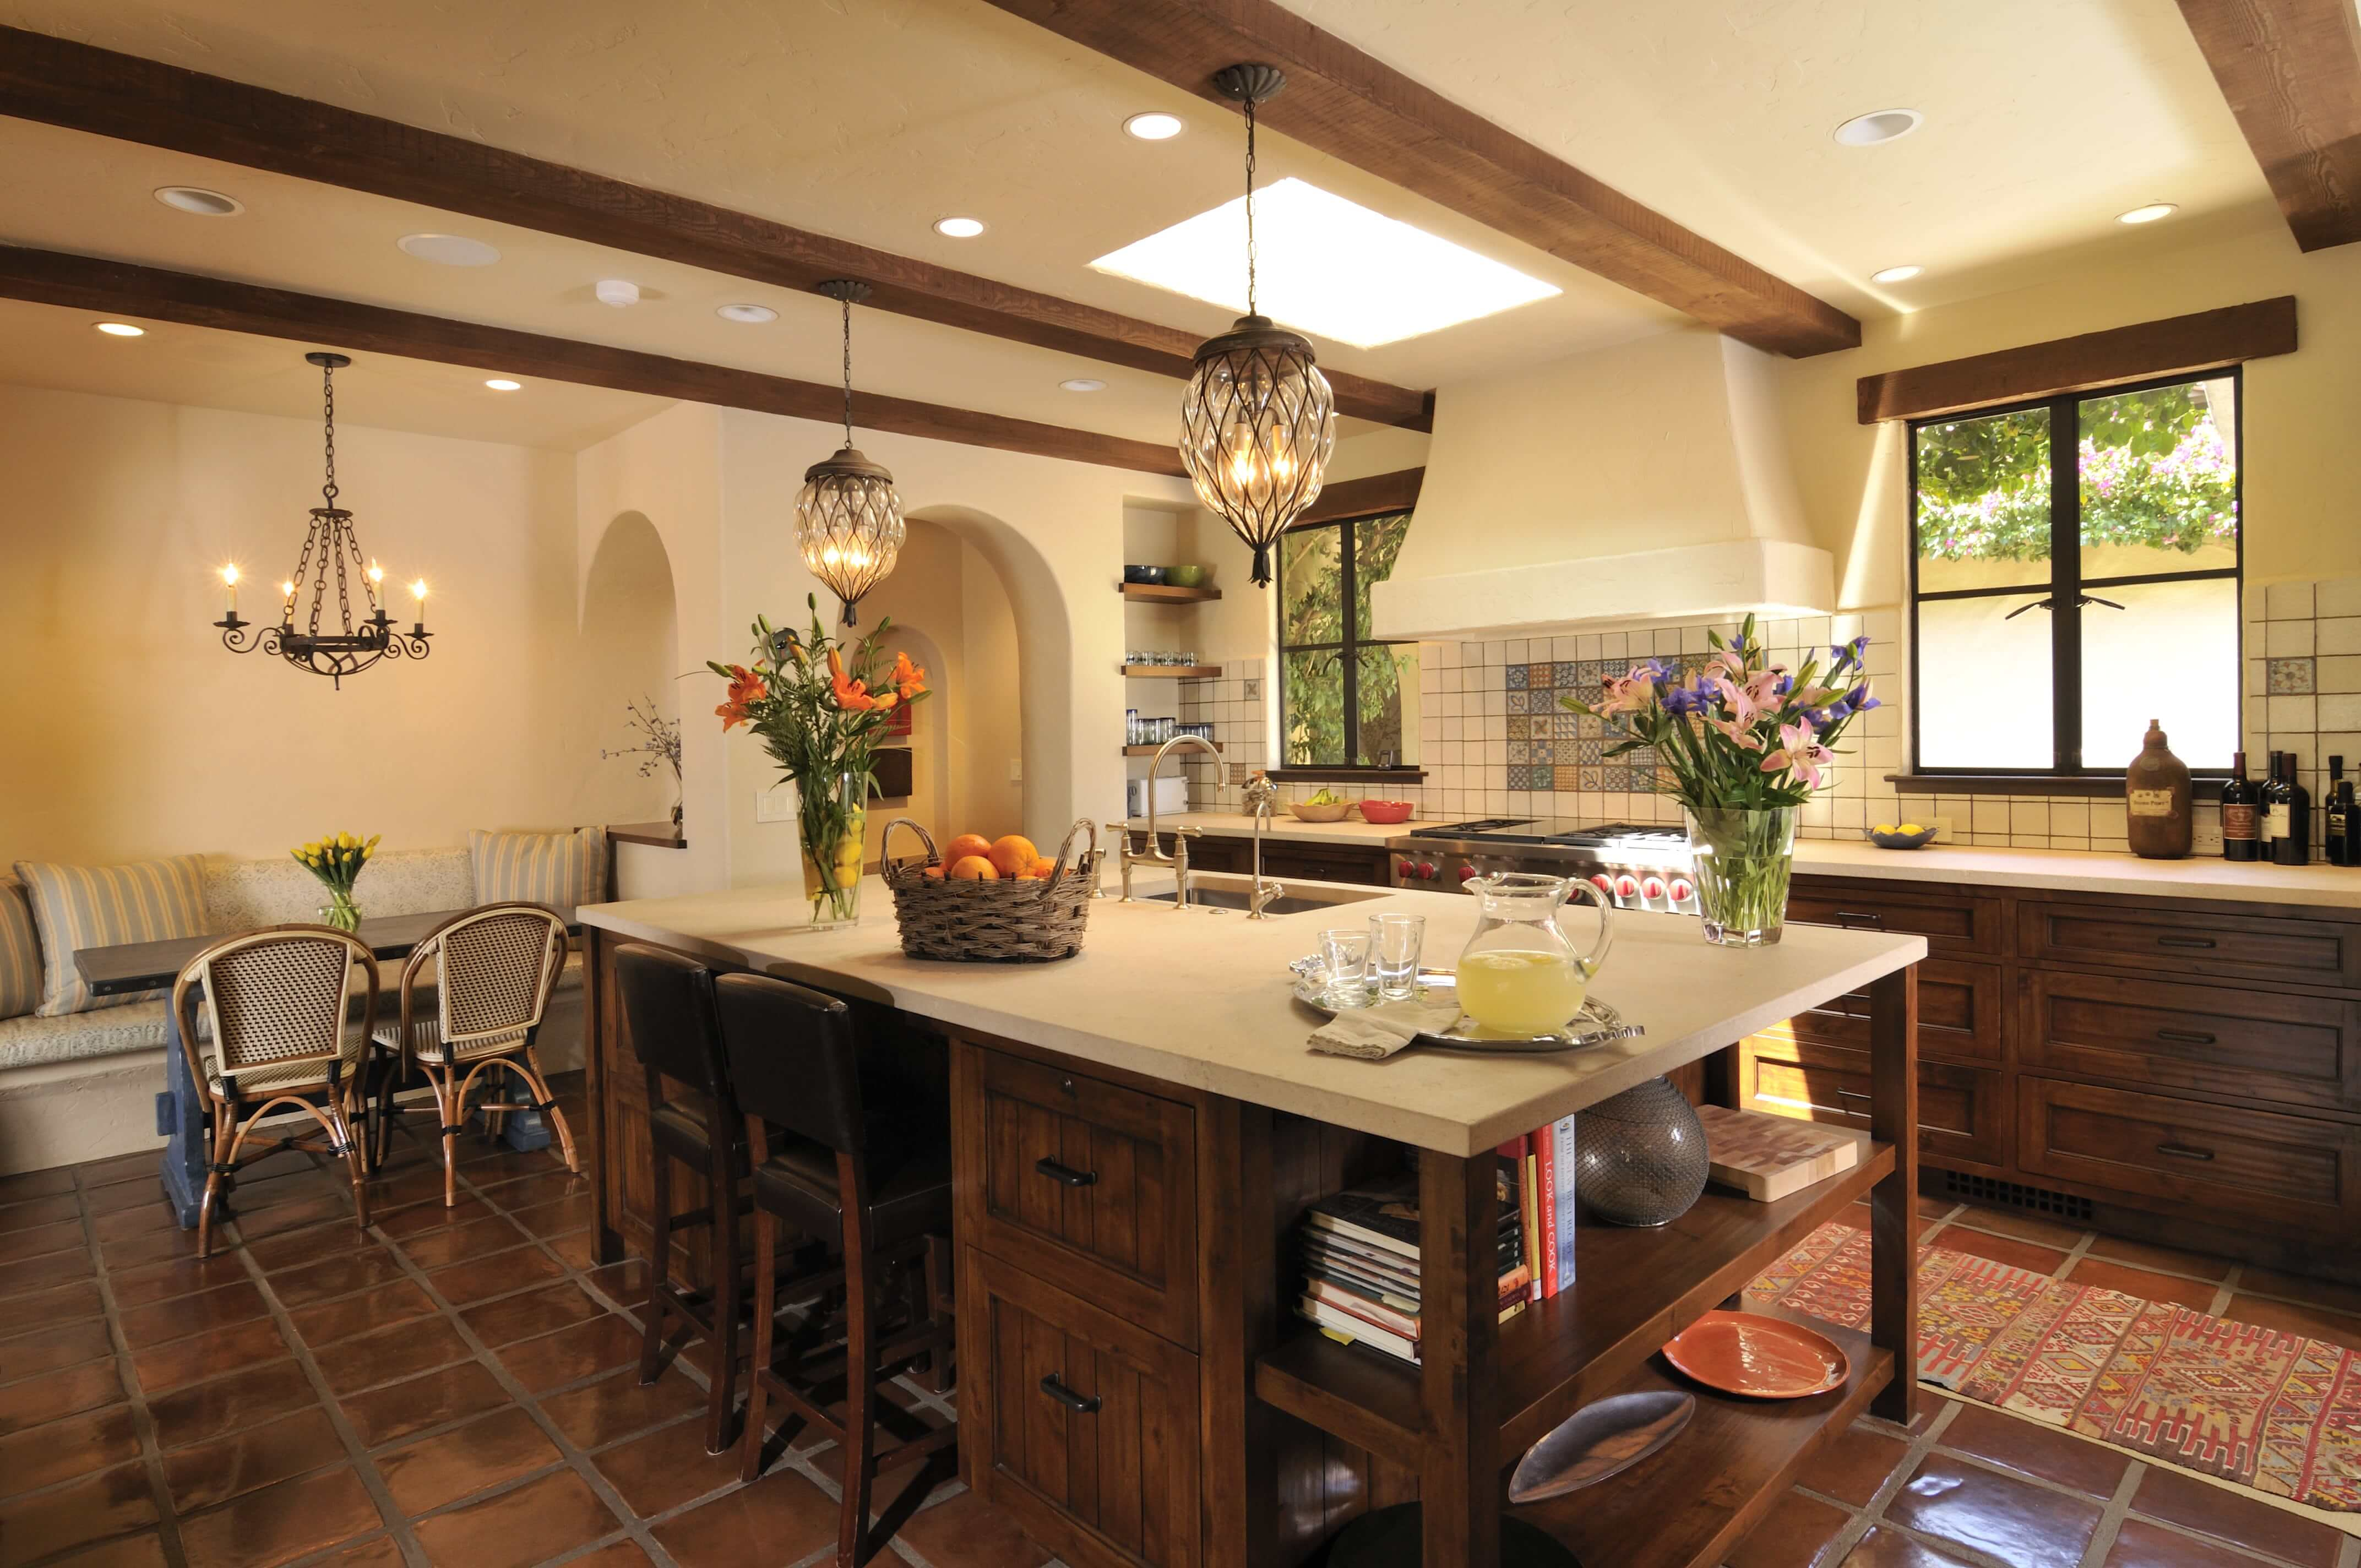 Island Lighting Ideas 68 43deluxe Custom Kitchen Island Ideas Jaw Dropping Designs